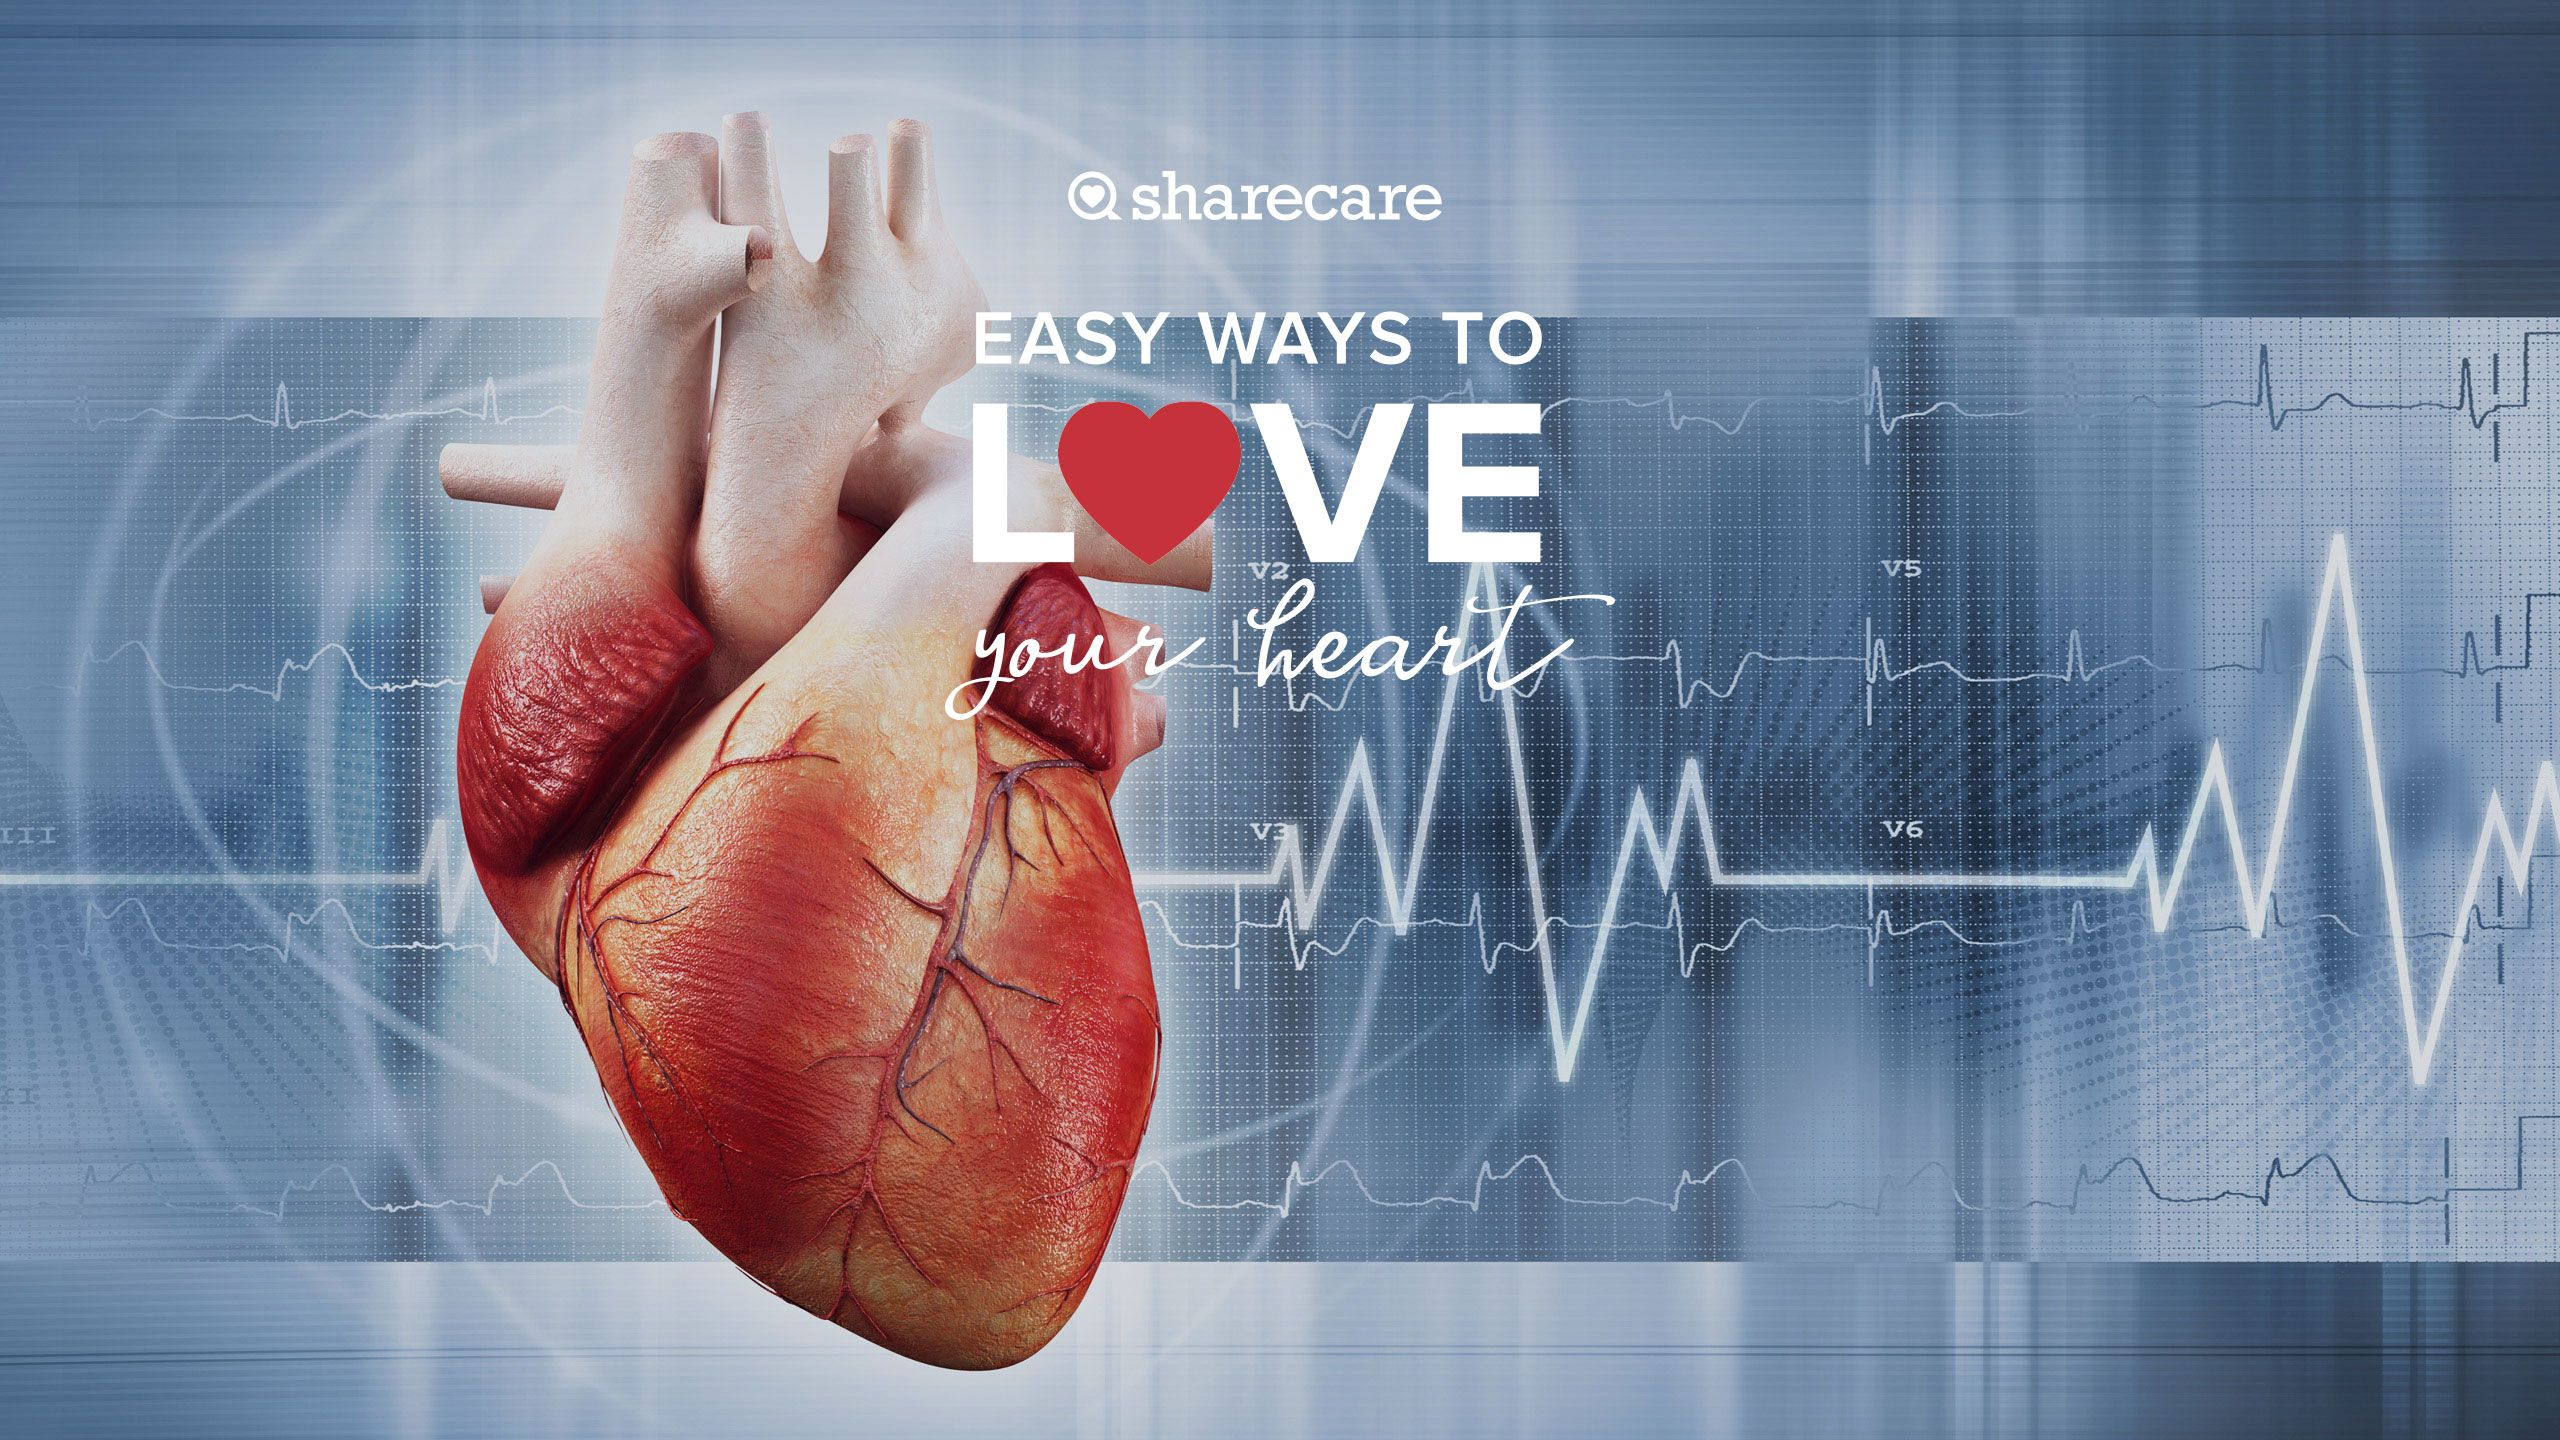 8 Incredible Heart Facts You Haven't Heard Before